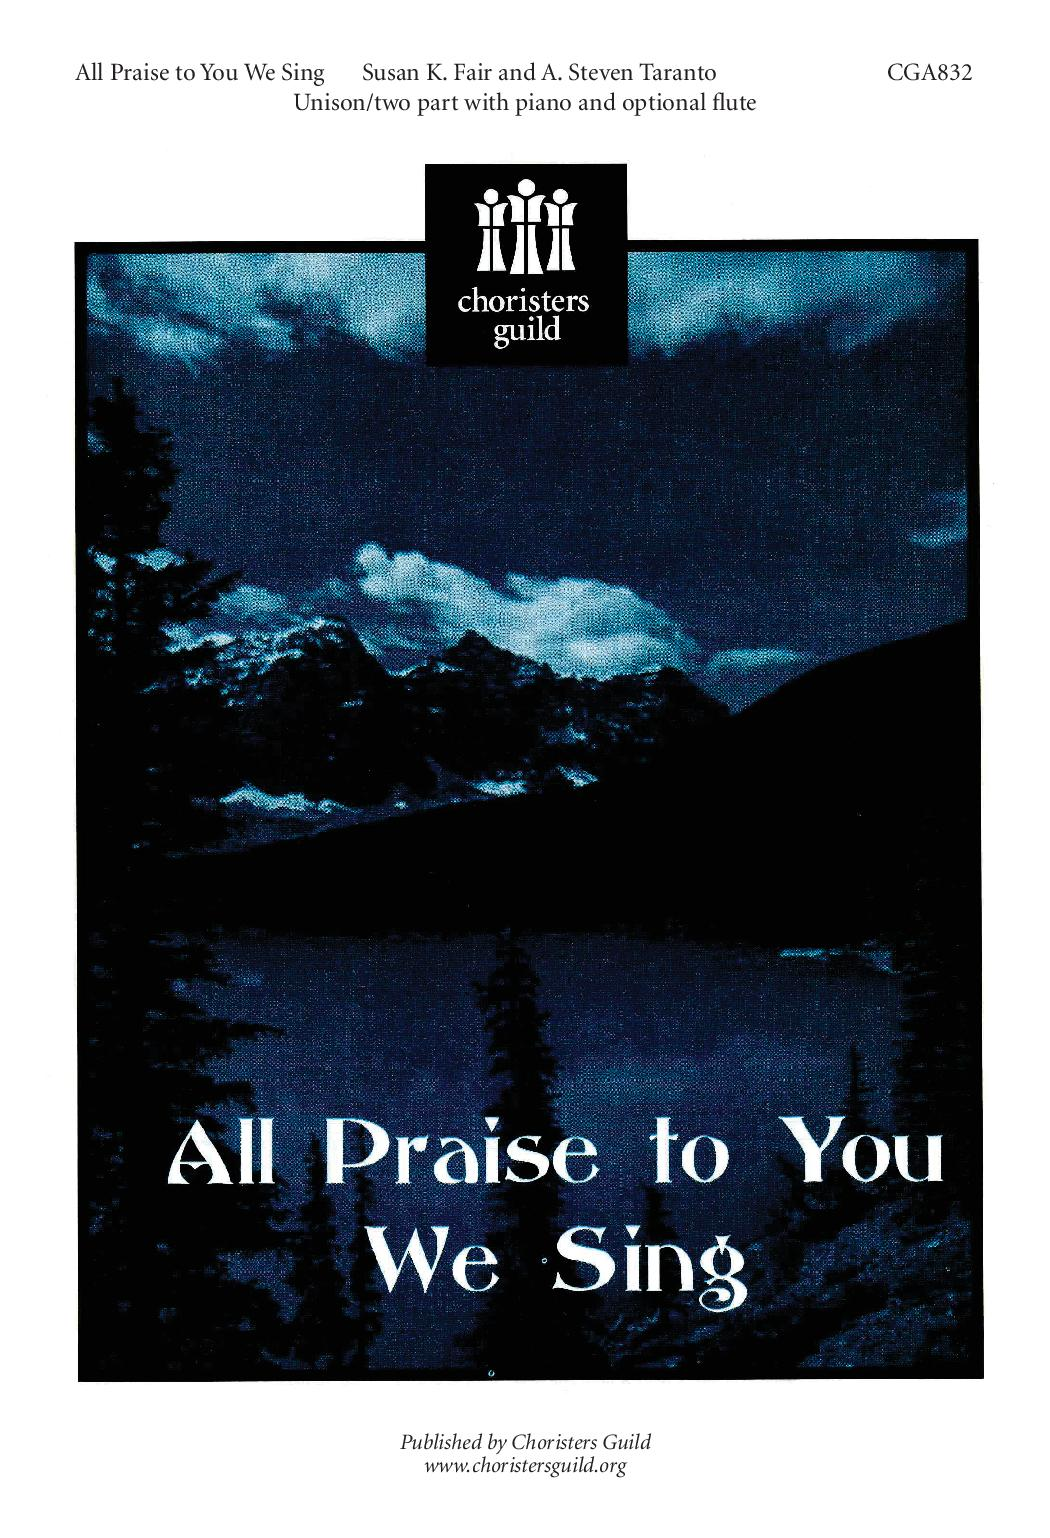 All Praise to You We Sing